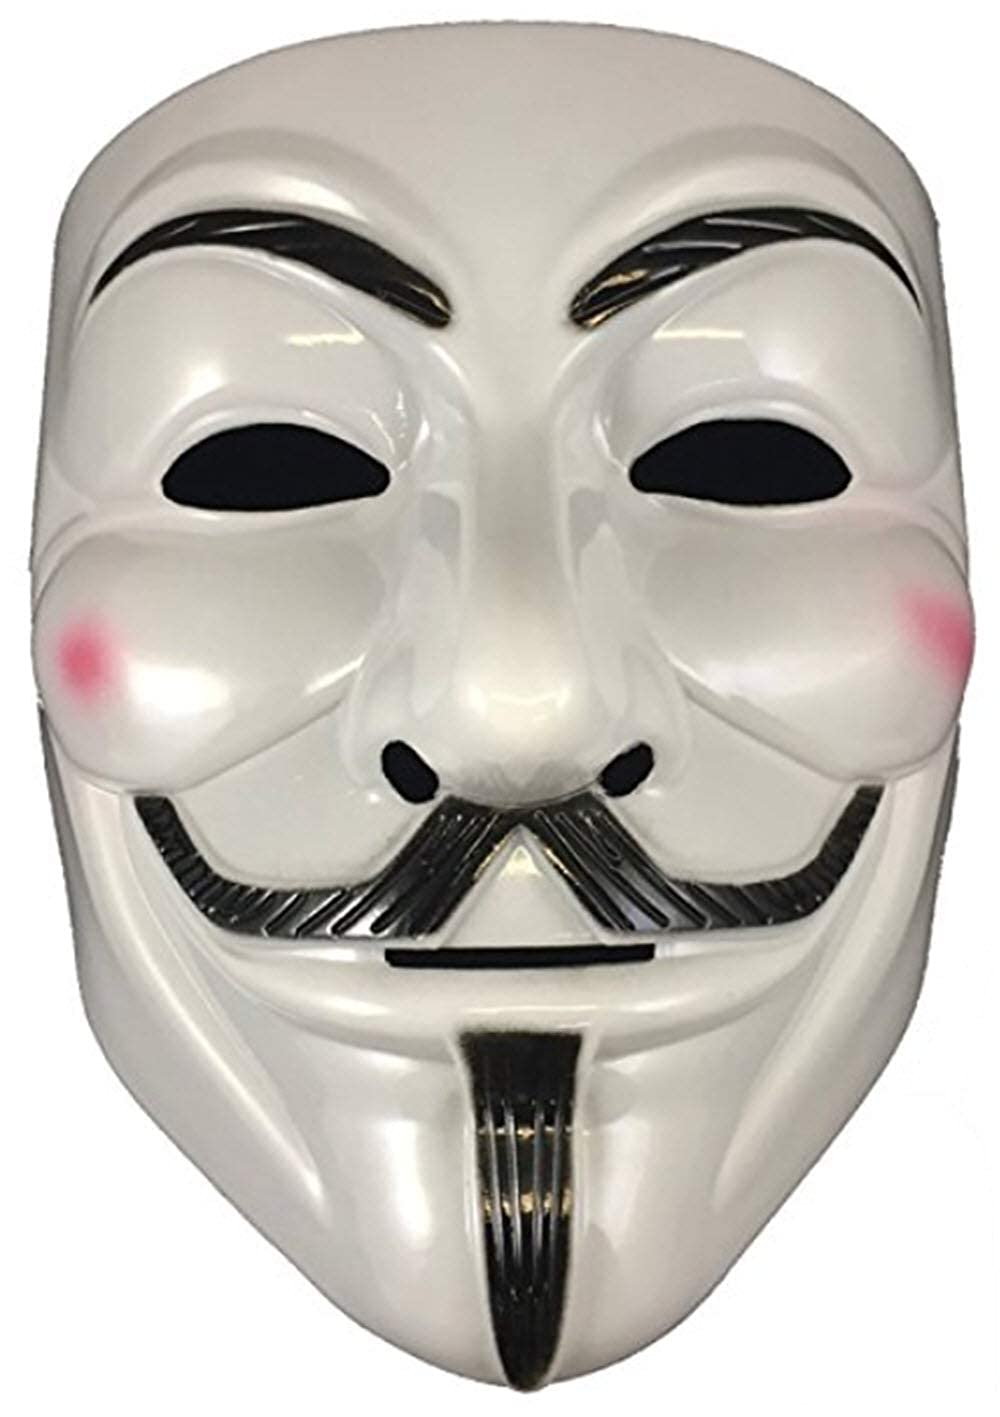 GnG's V Vendetta Anonymous Guy Fawkes Mask White Fancy Cool Costume Cosplay Mask Parties, Carnivals